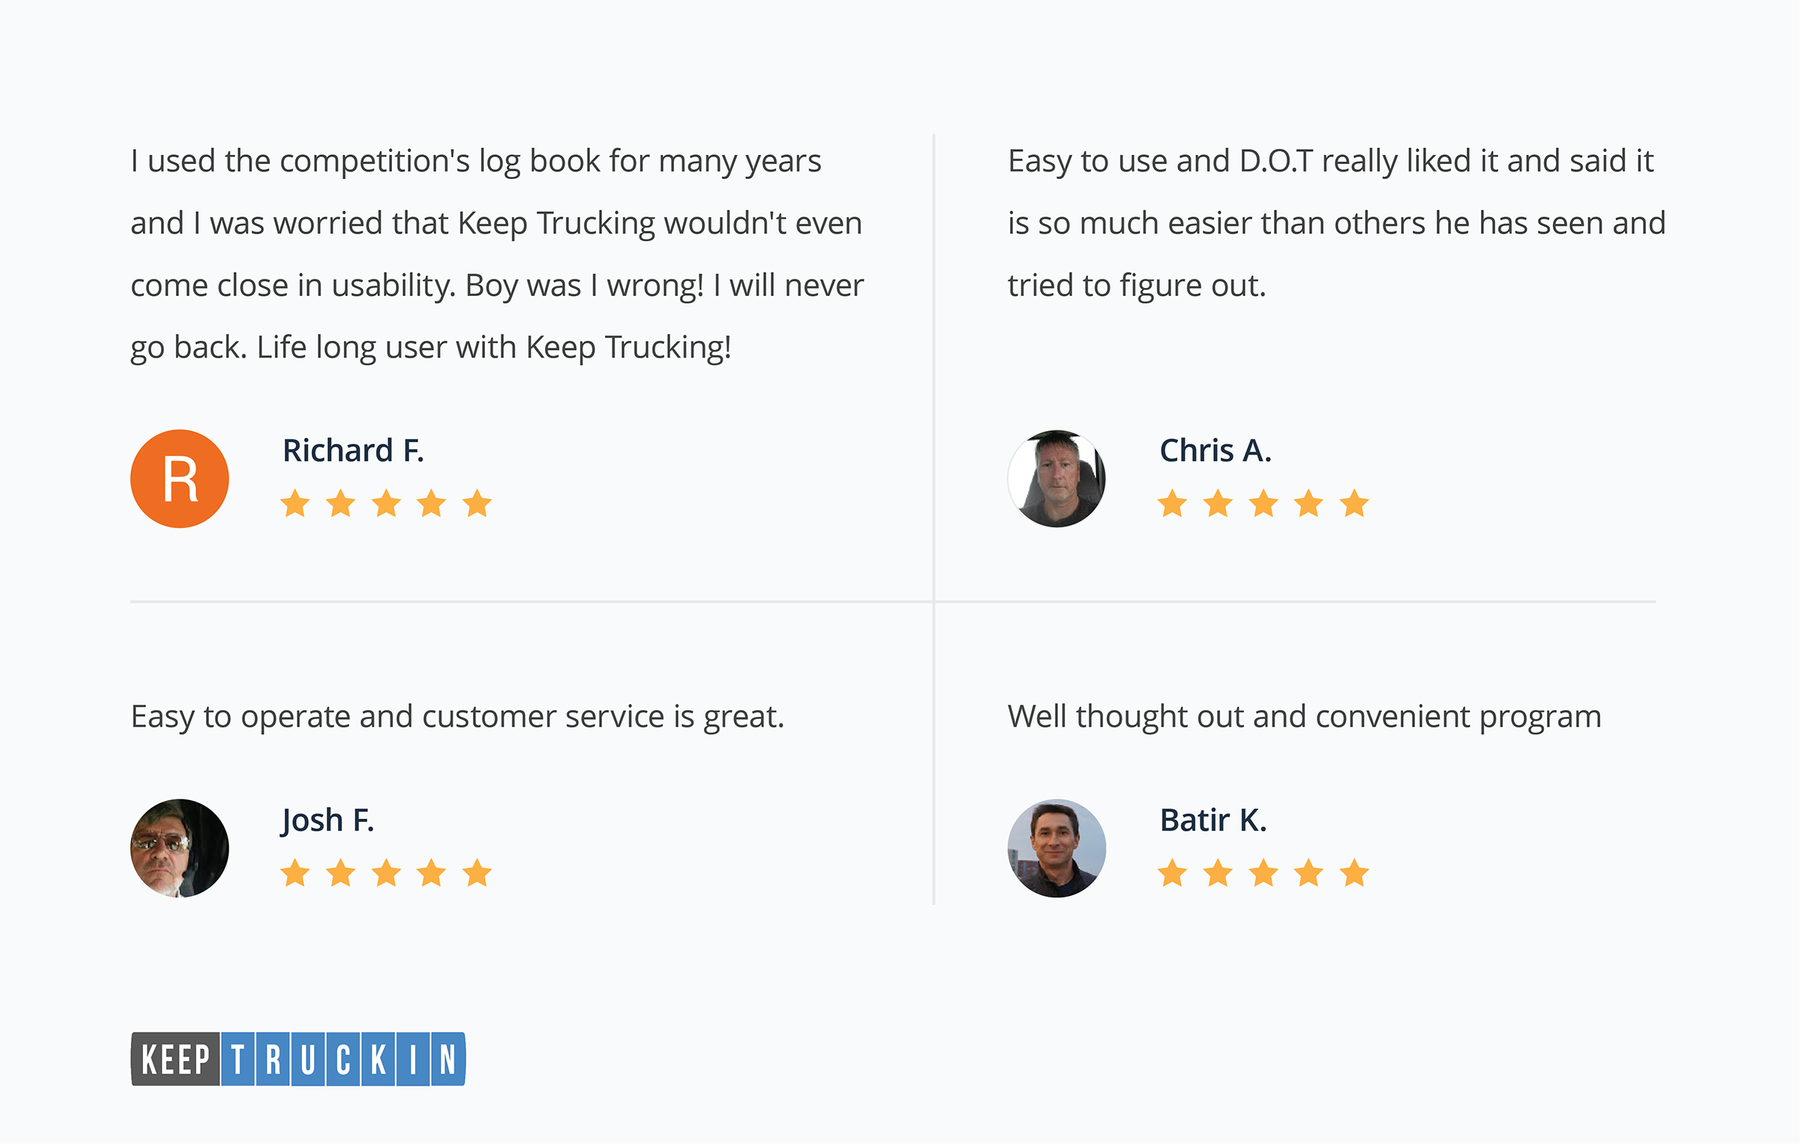 KeepTruckin's user reviews